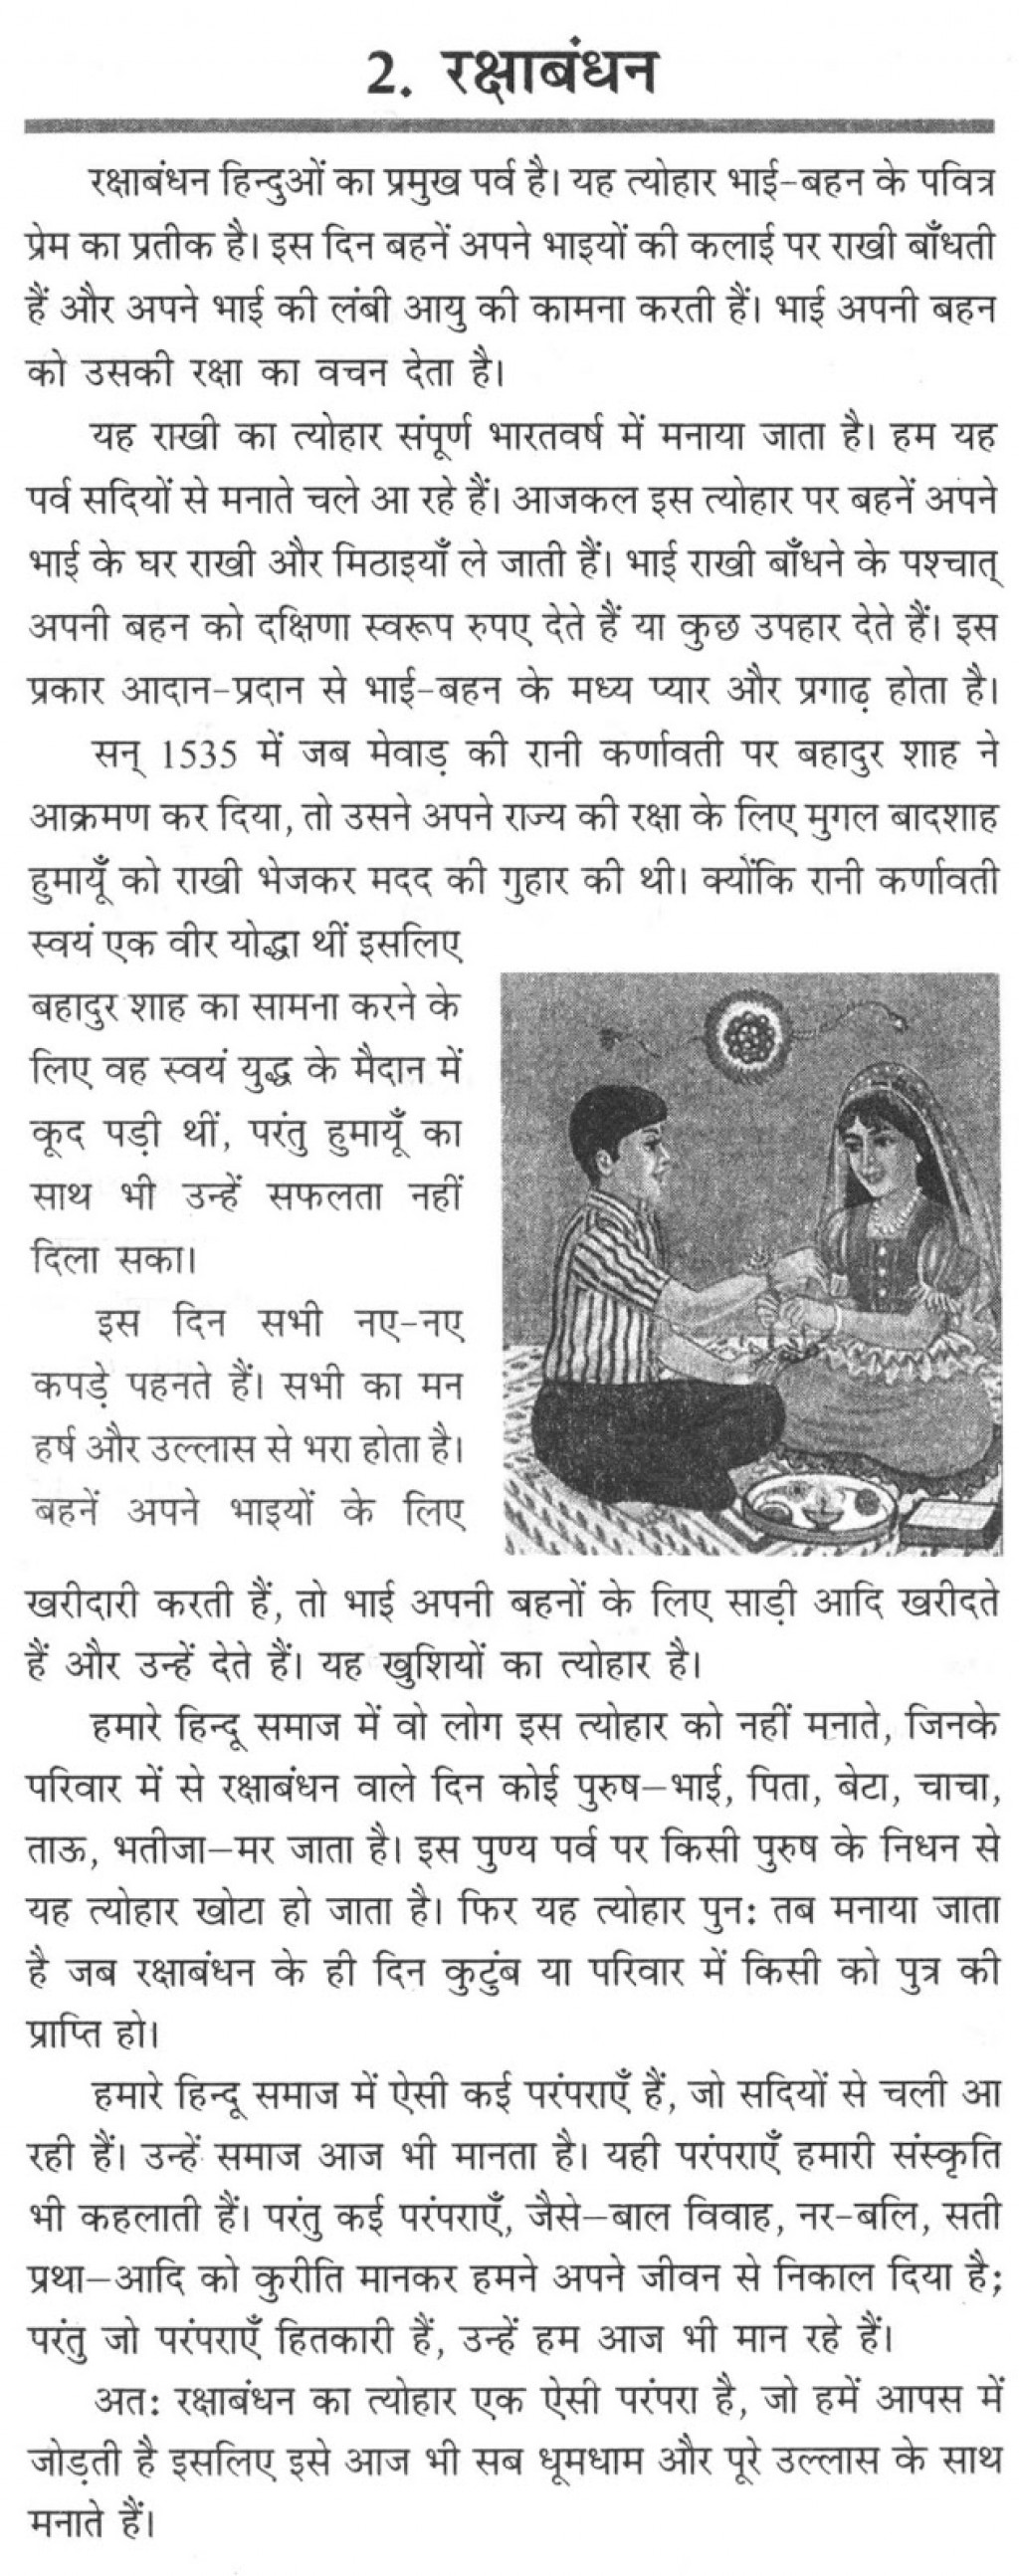 015 Raksha20bandhan20essay20in20hindi202016 Essay Example Good Habits In Exceptional Hindi Healthy Eating Reading Is A Habit Large